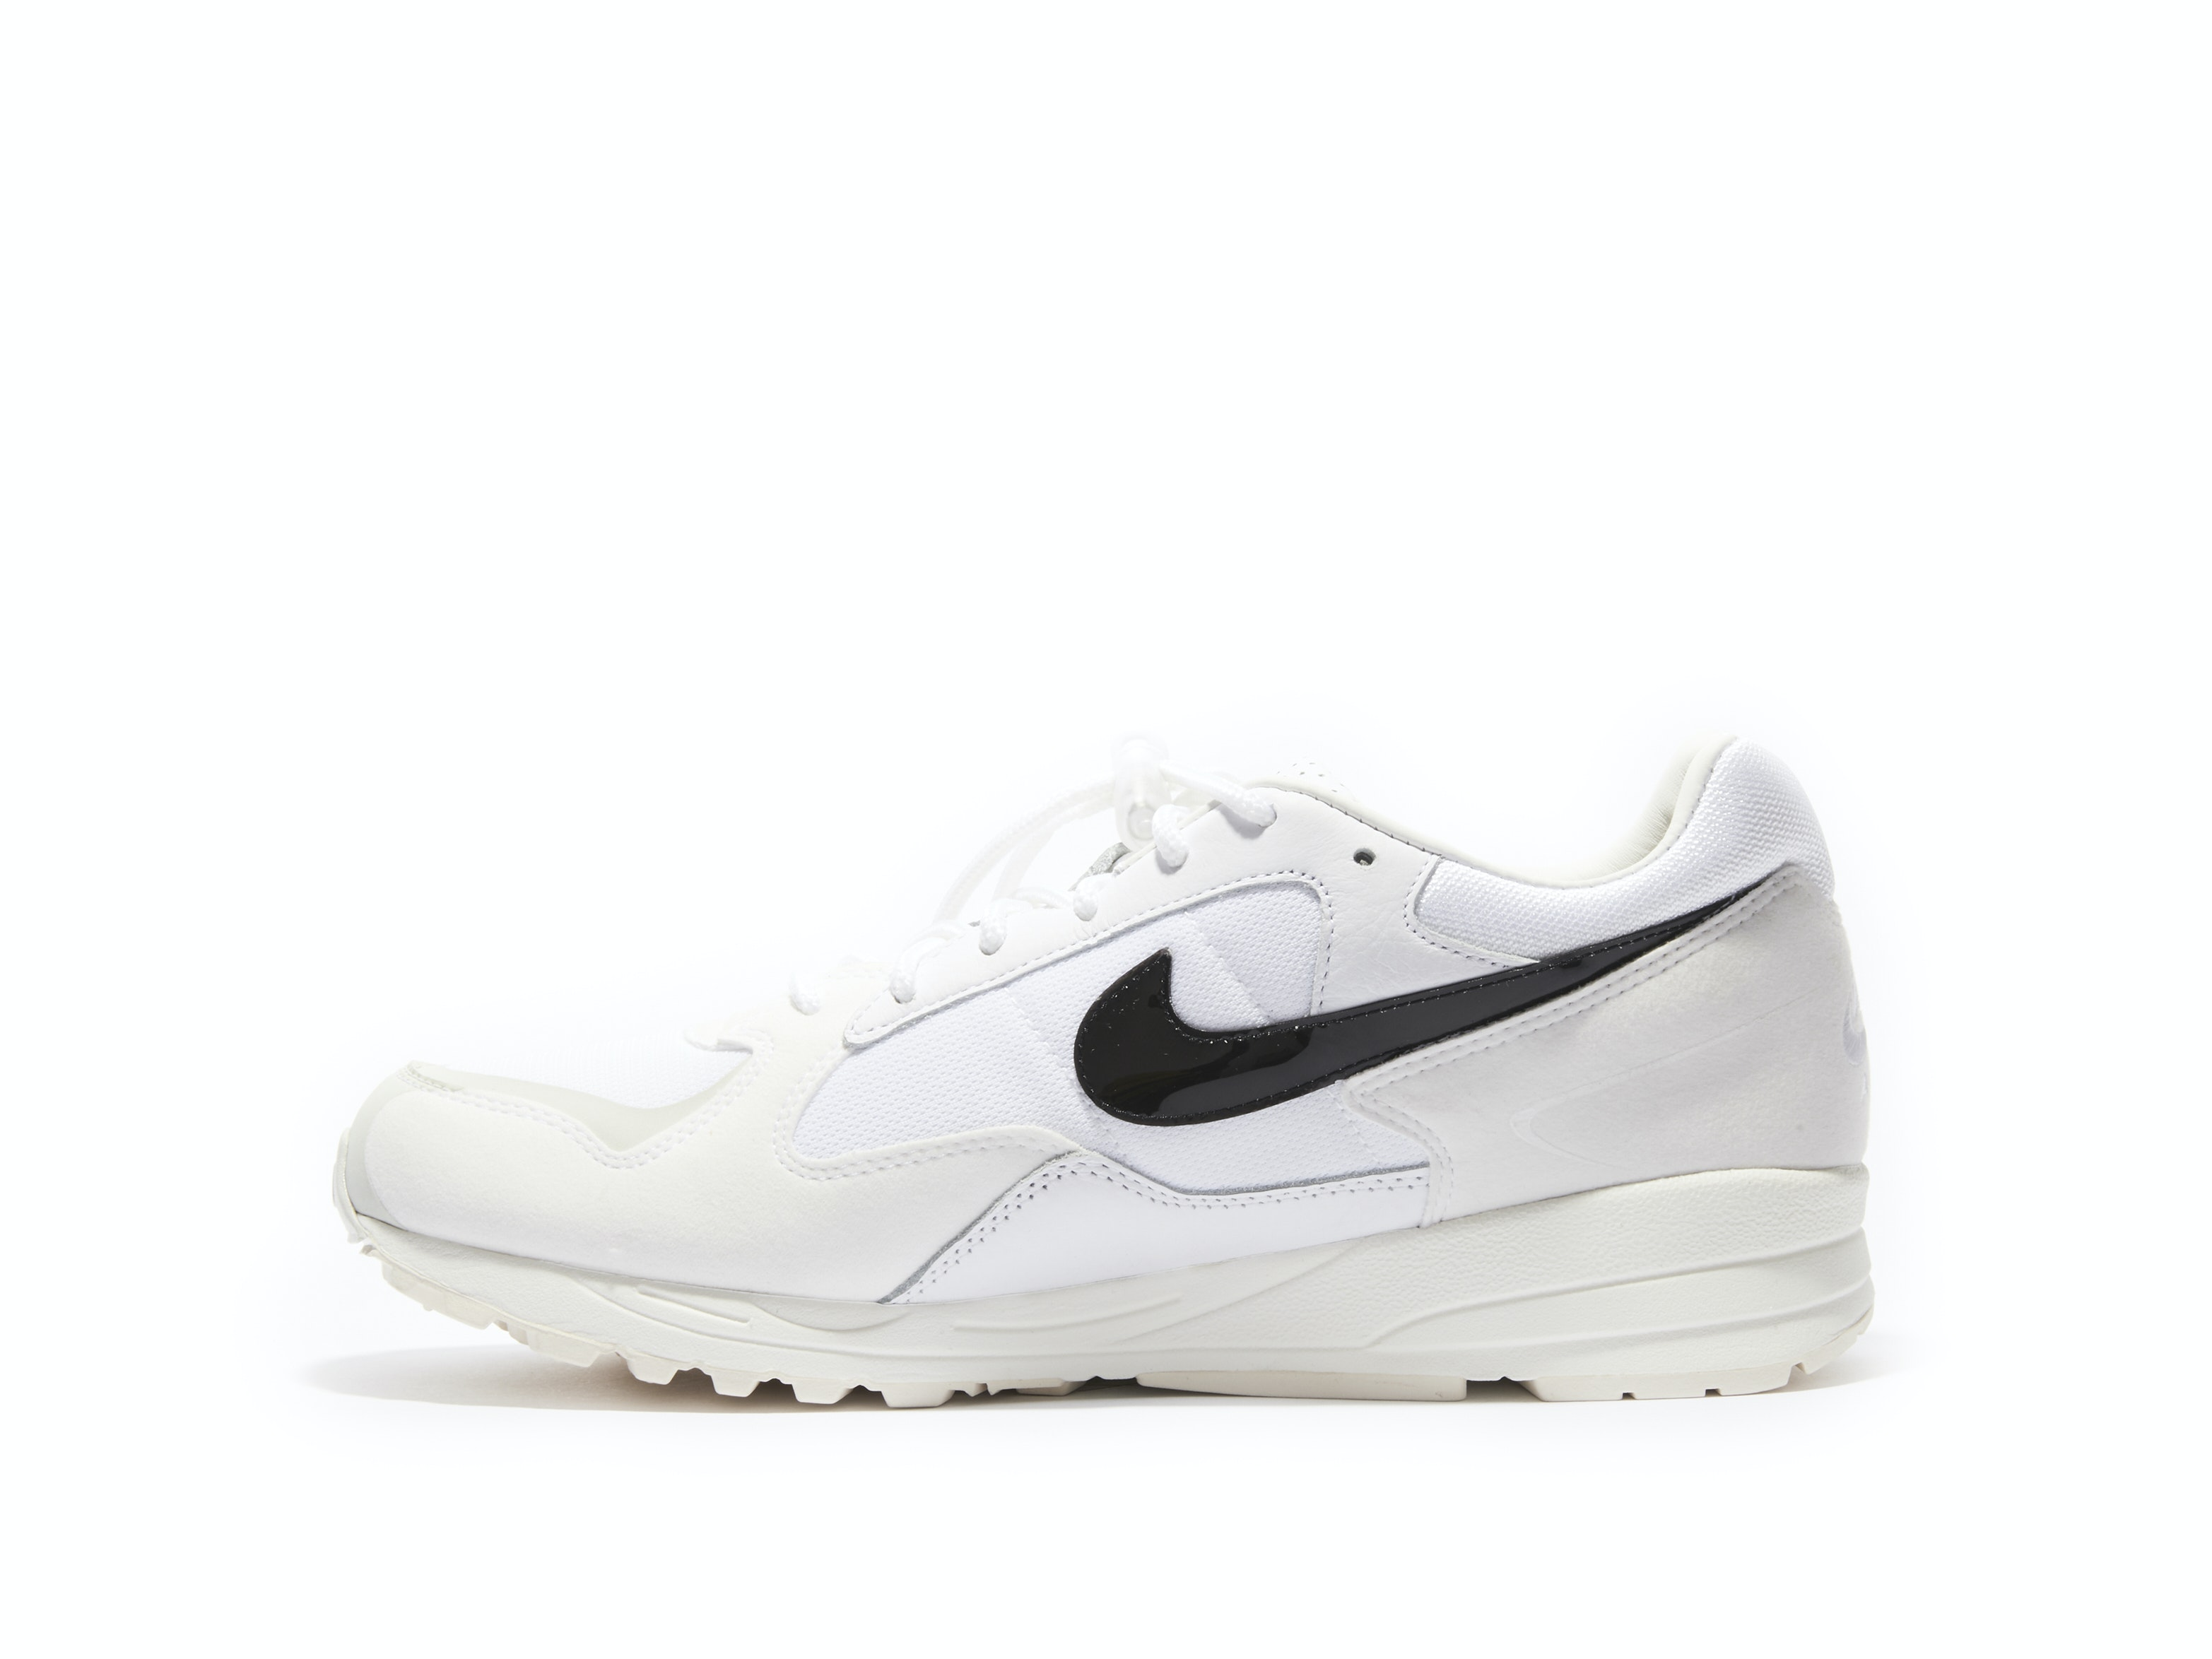 34e0f4c247c27 Shop Fear Of God Air Skylon 2 White Online